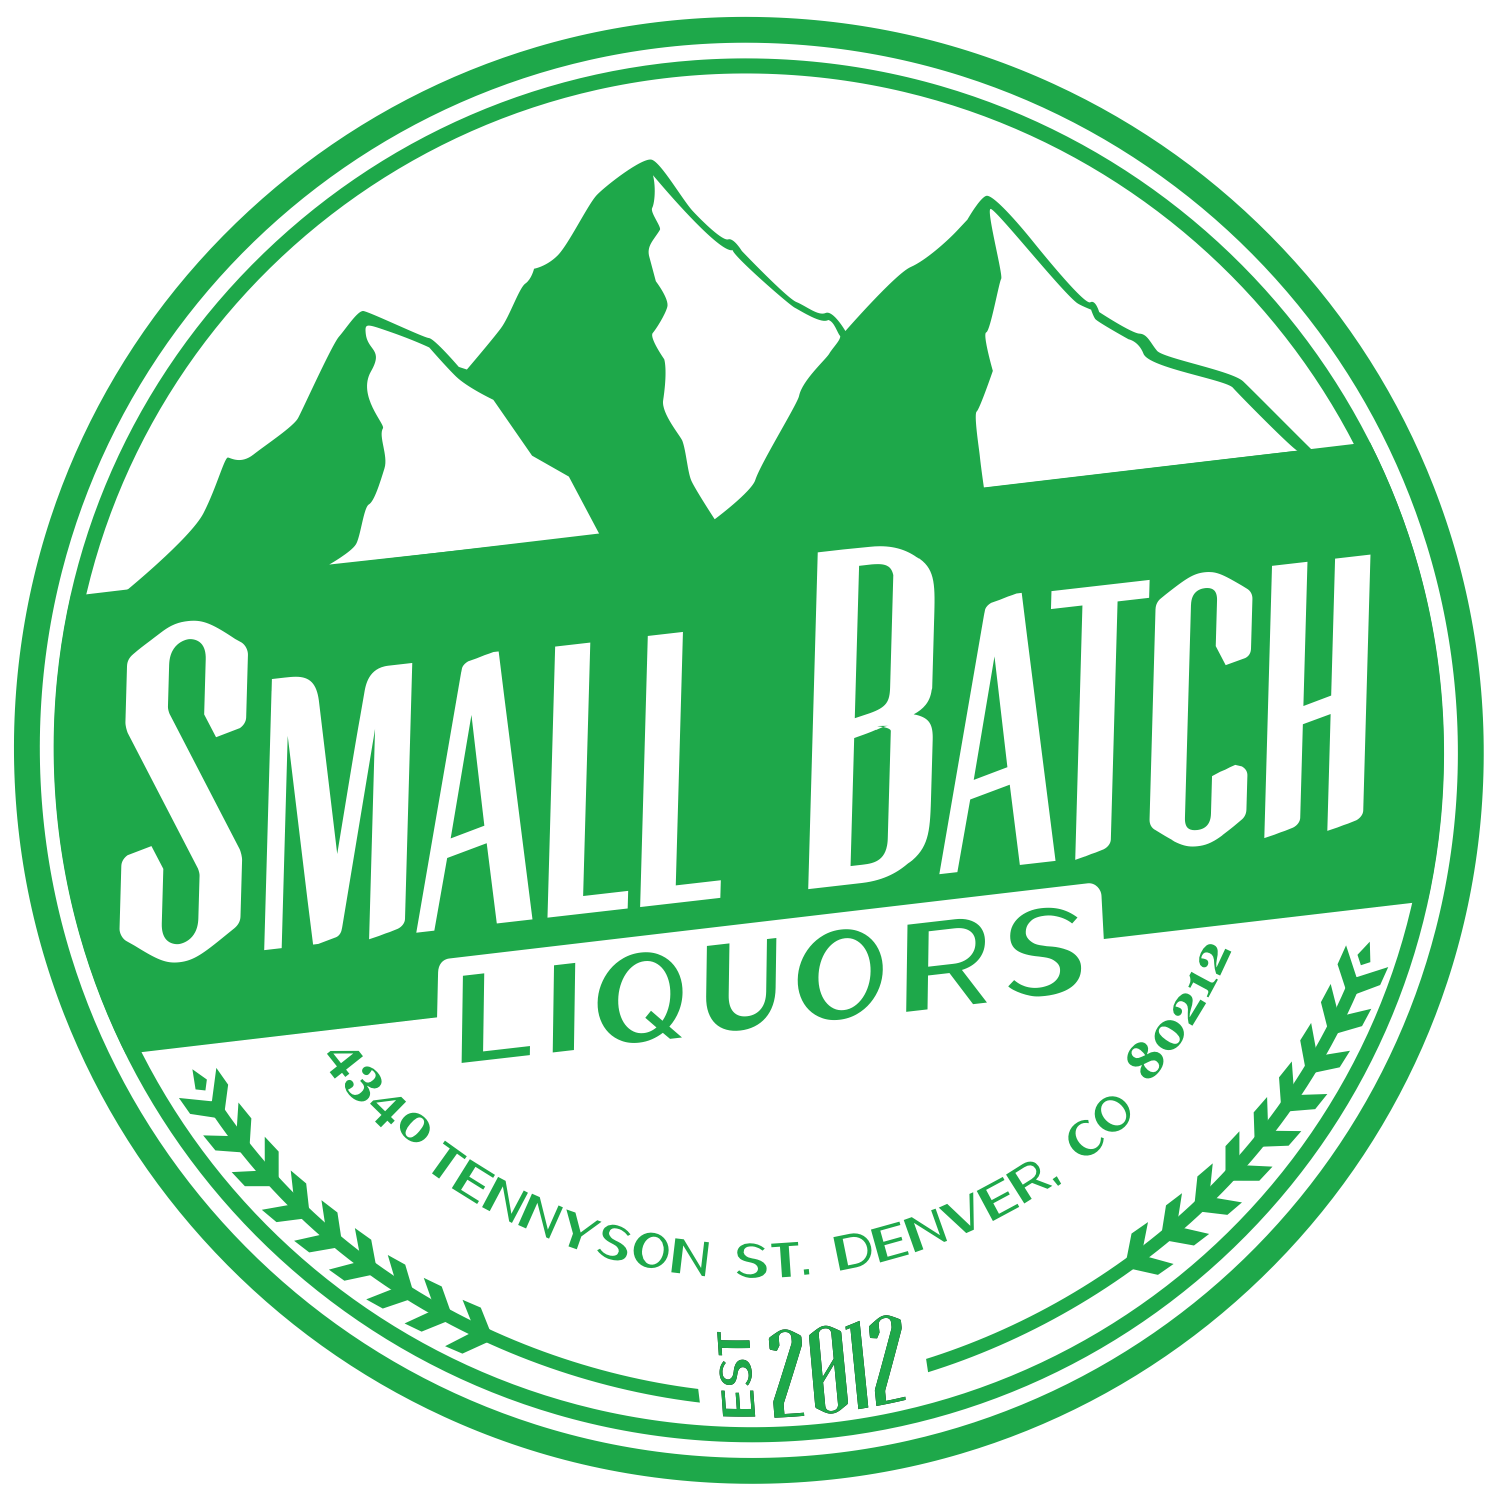 Small Batch Liquors